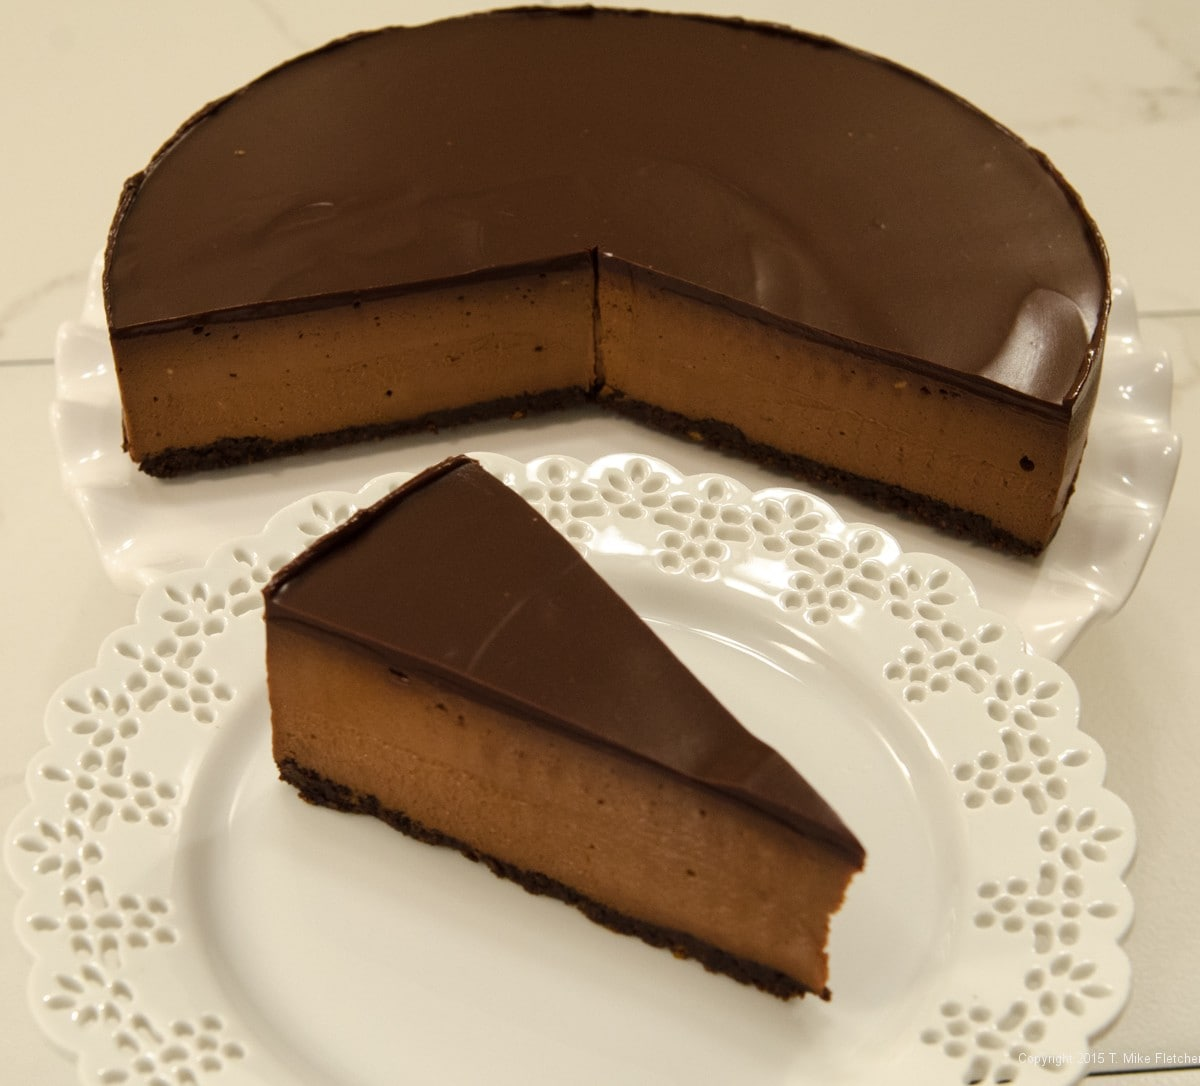 Triple Chocolate Cheesecake - Pastries Like a Pro